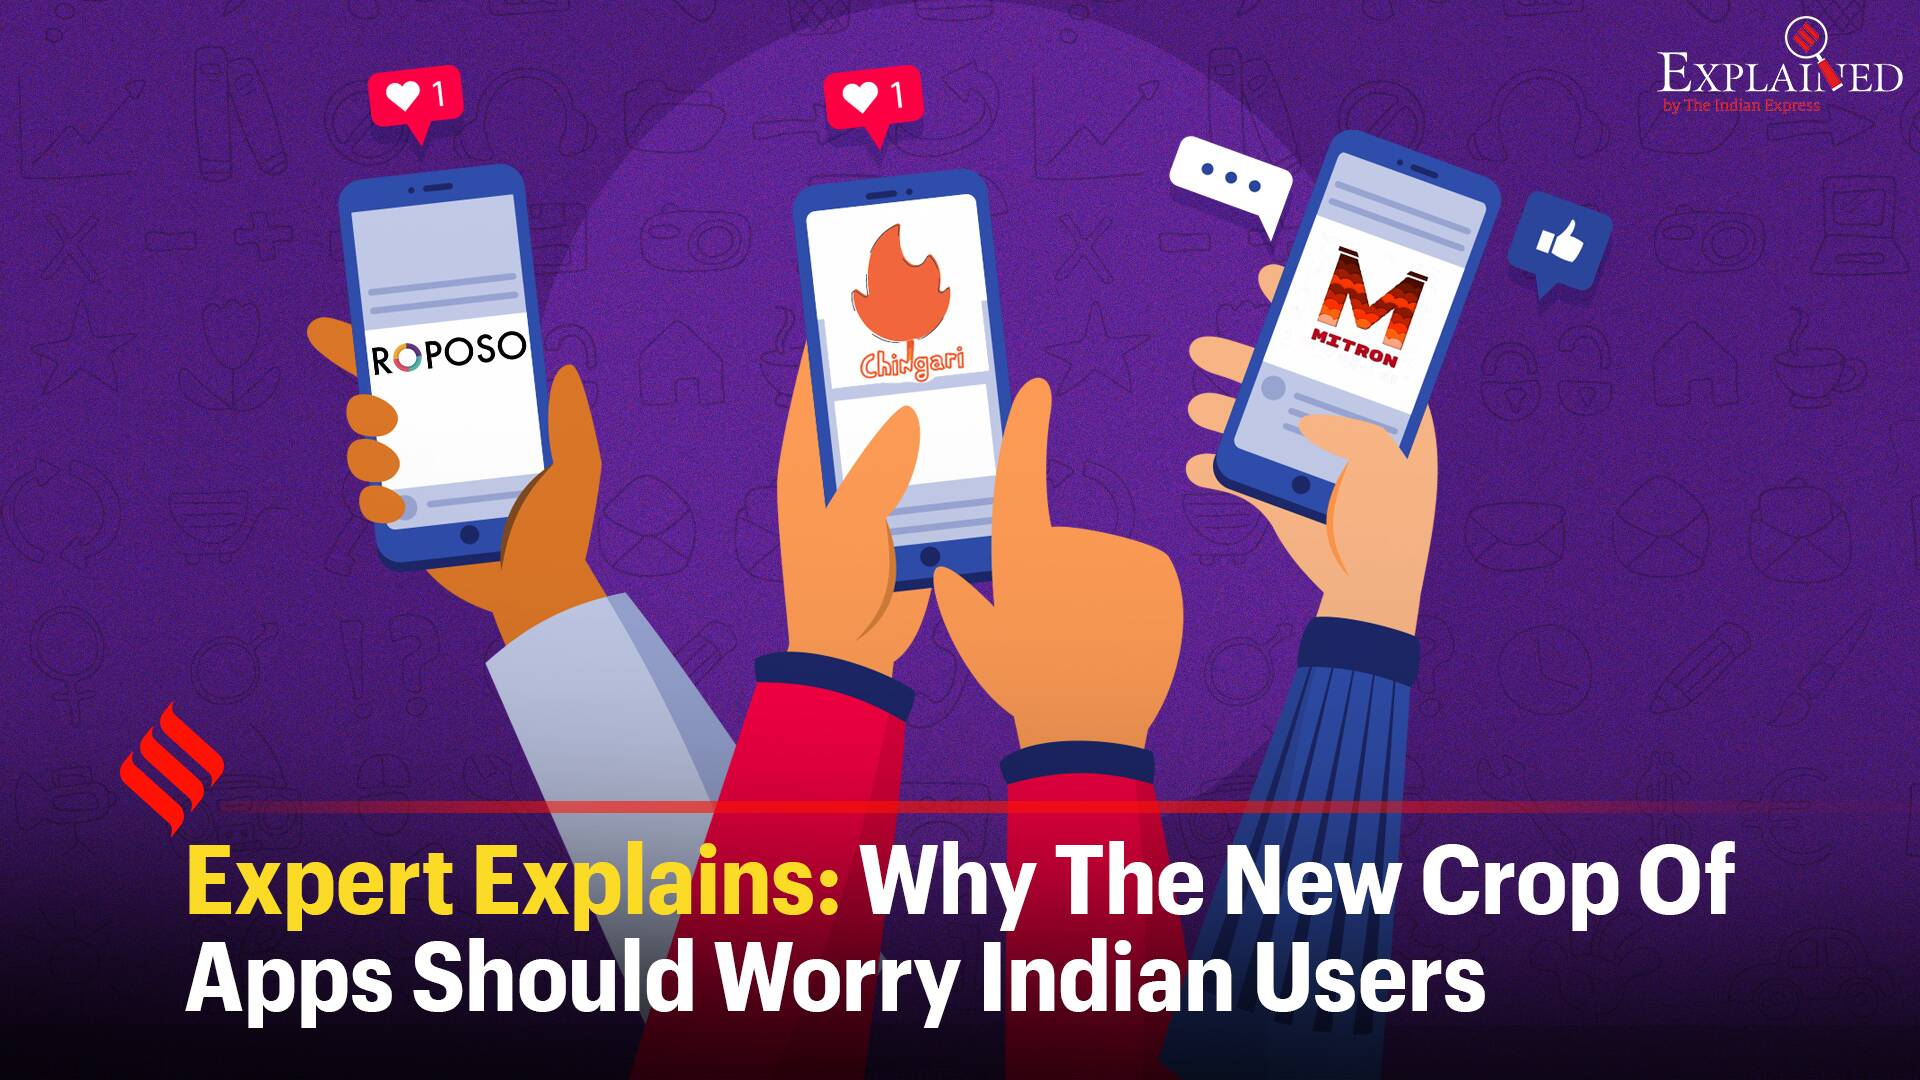 Expert Explains: Why The New Crop Of Apps Should Worry Indian Users